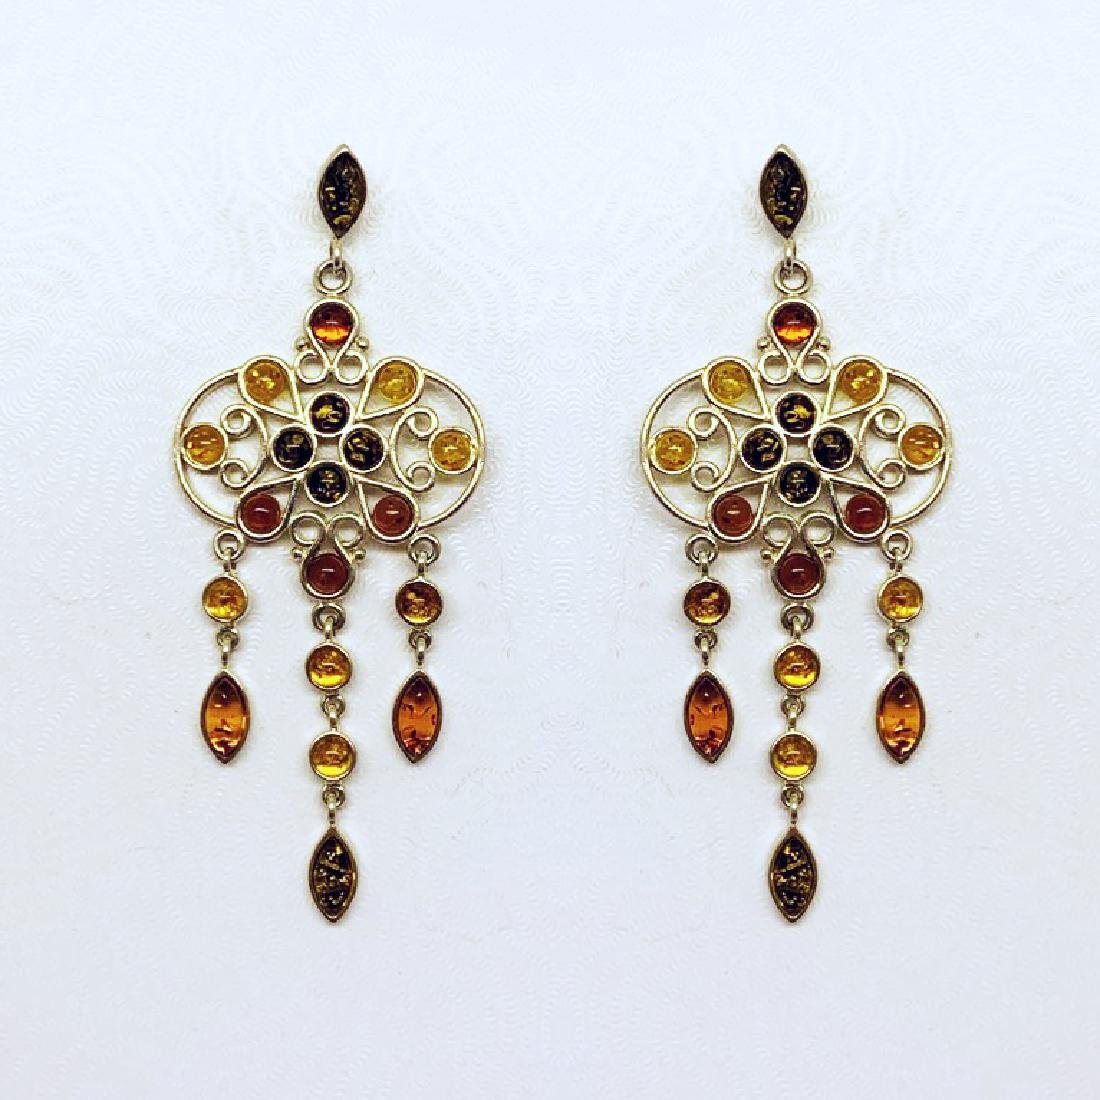 sterling silver baltic amber earrings  #378 - 2